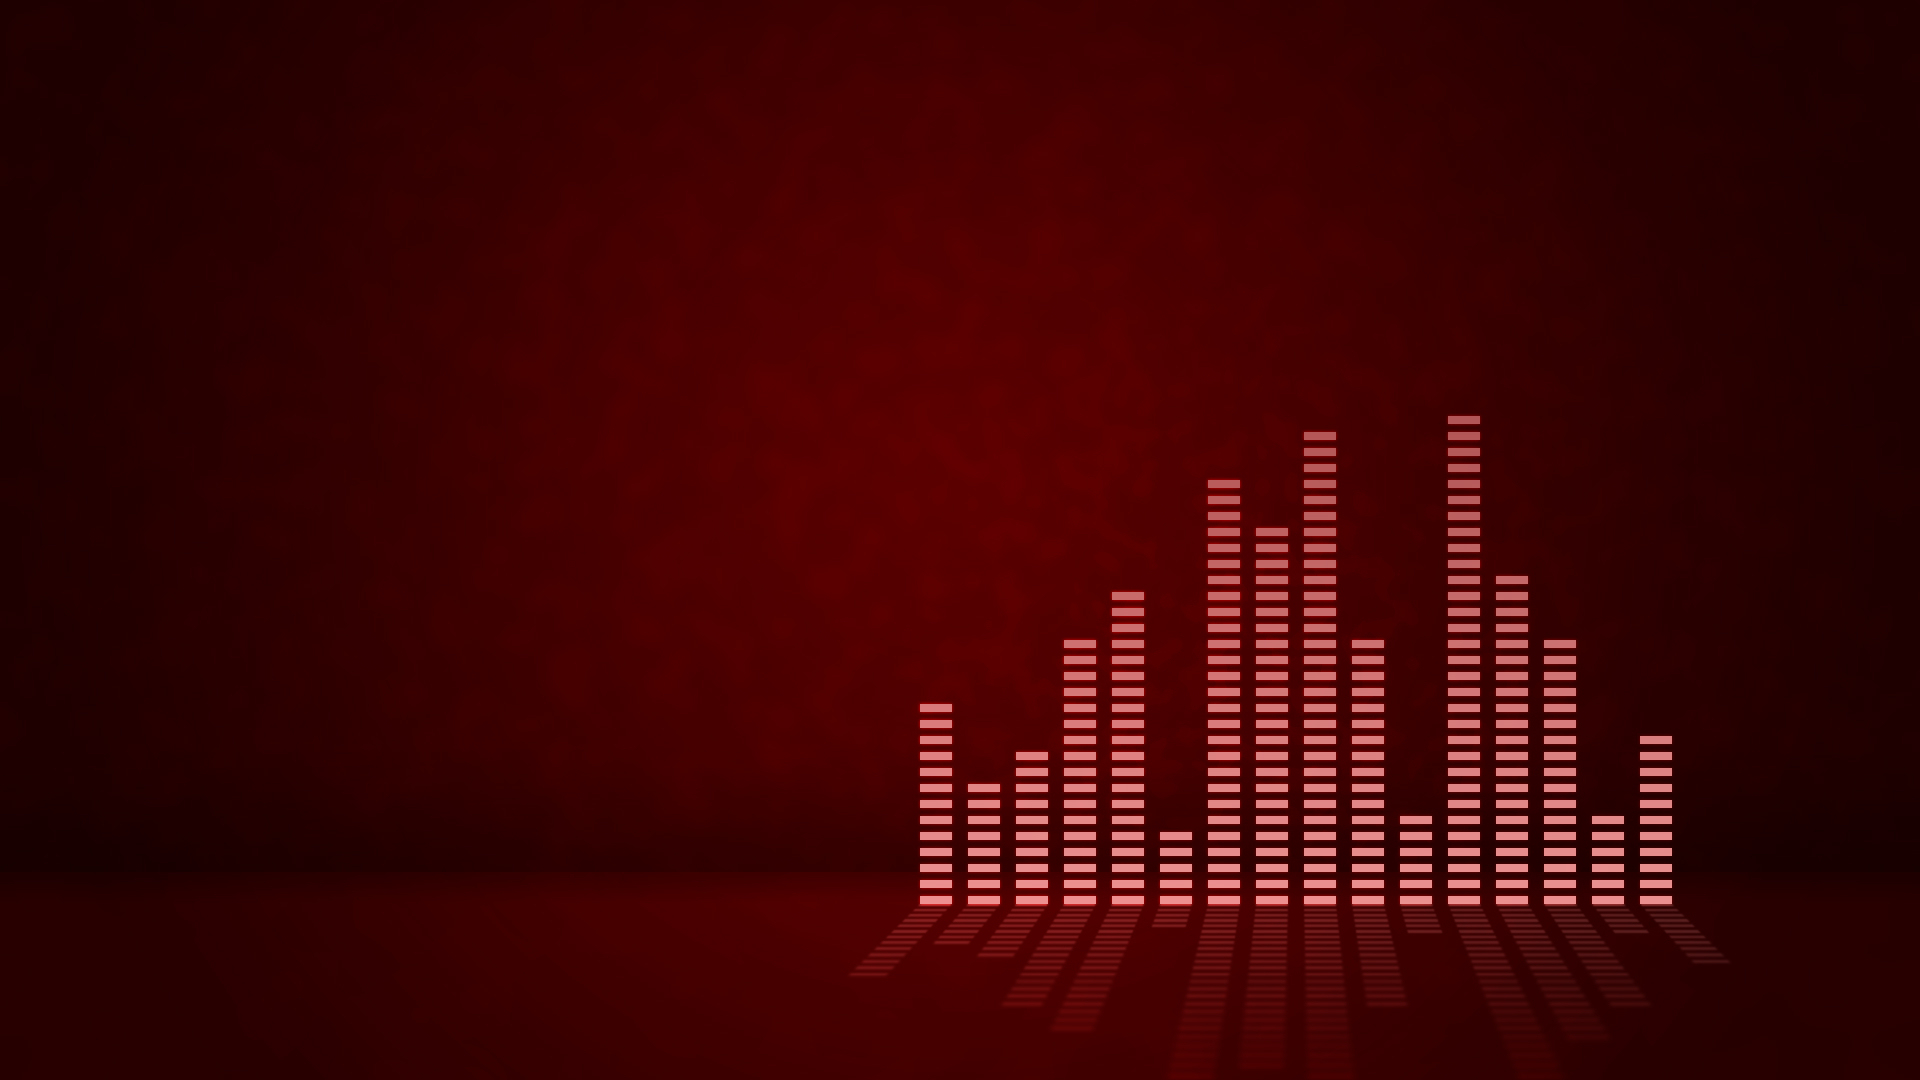 Cute Wallpapers For Dell Laptop Equalizer Dark Red Background Wallpaper Music